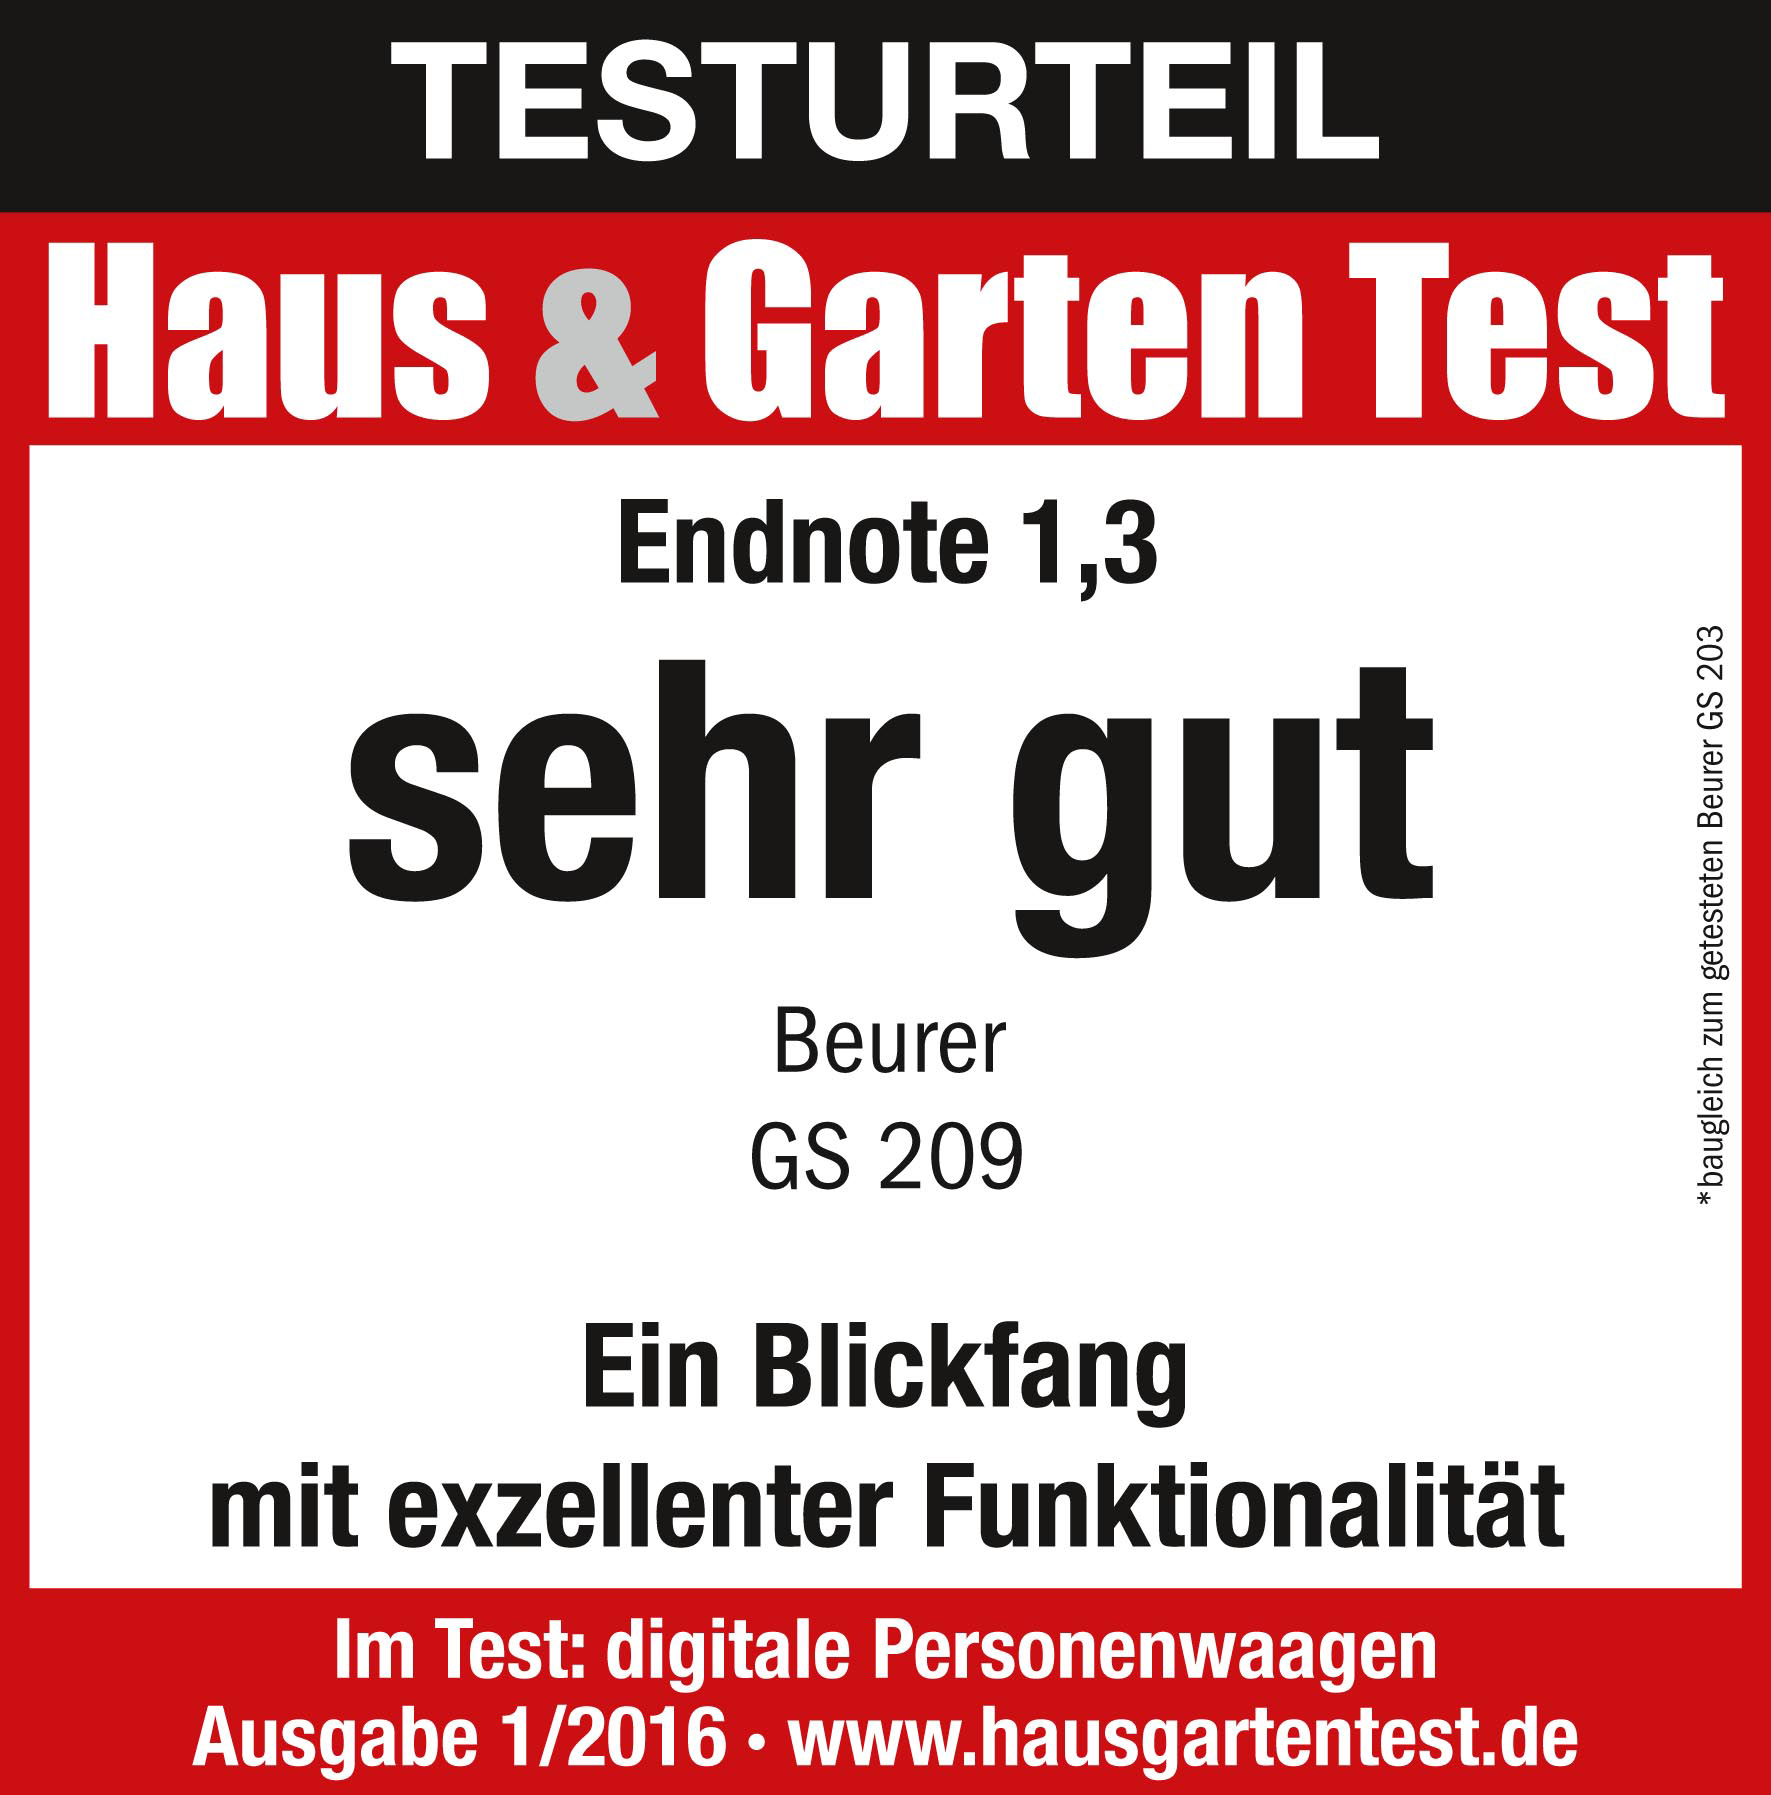 Test result: (1.3) very good for the Beurer GS 209 Beauty glass bathroom scale, 01/2016